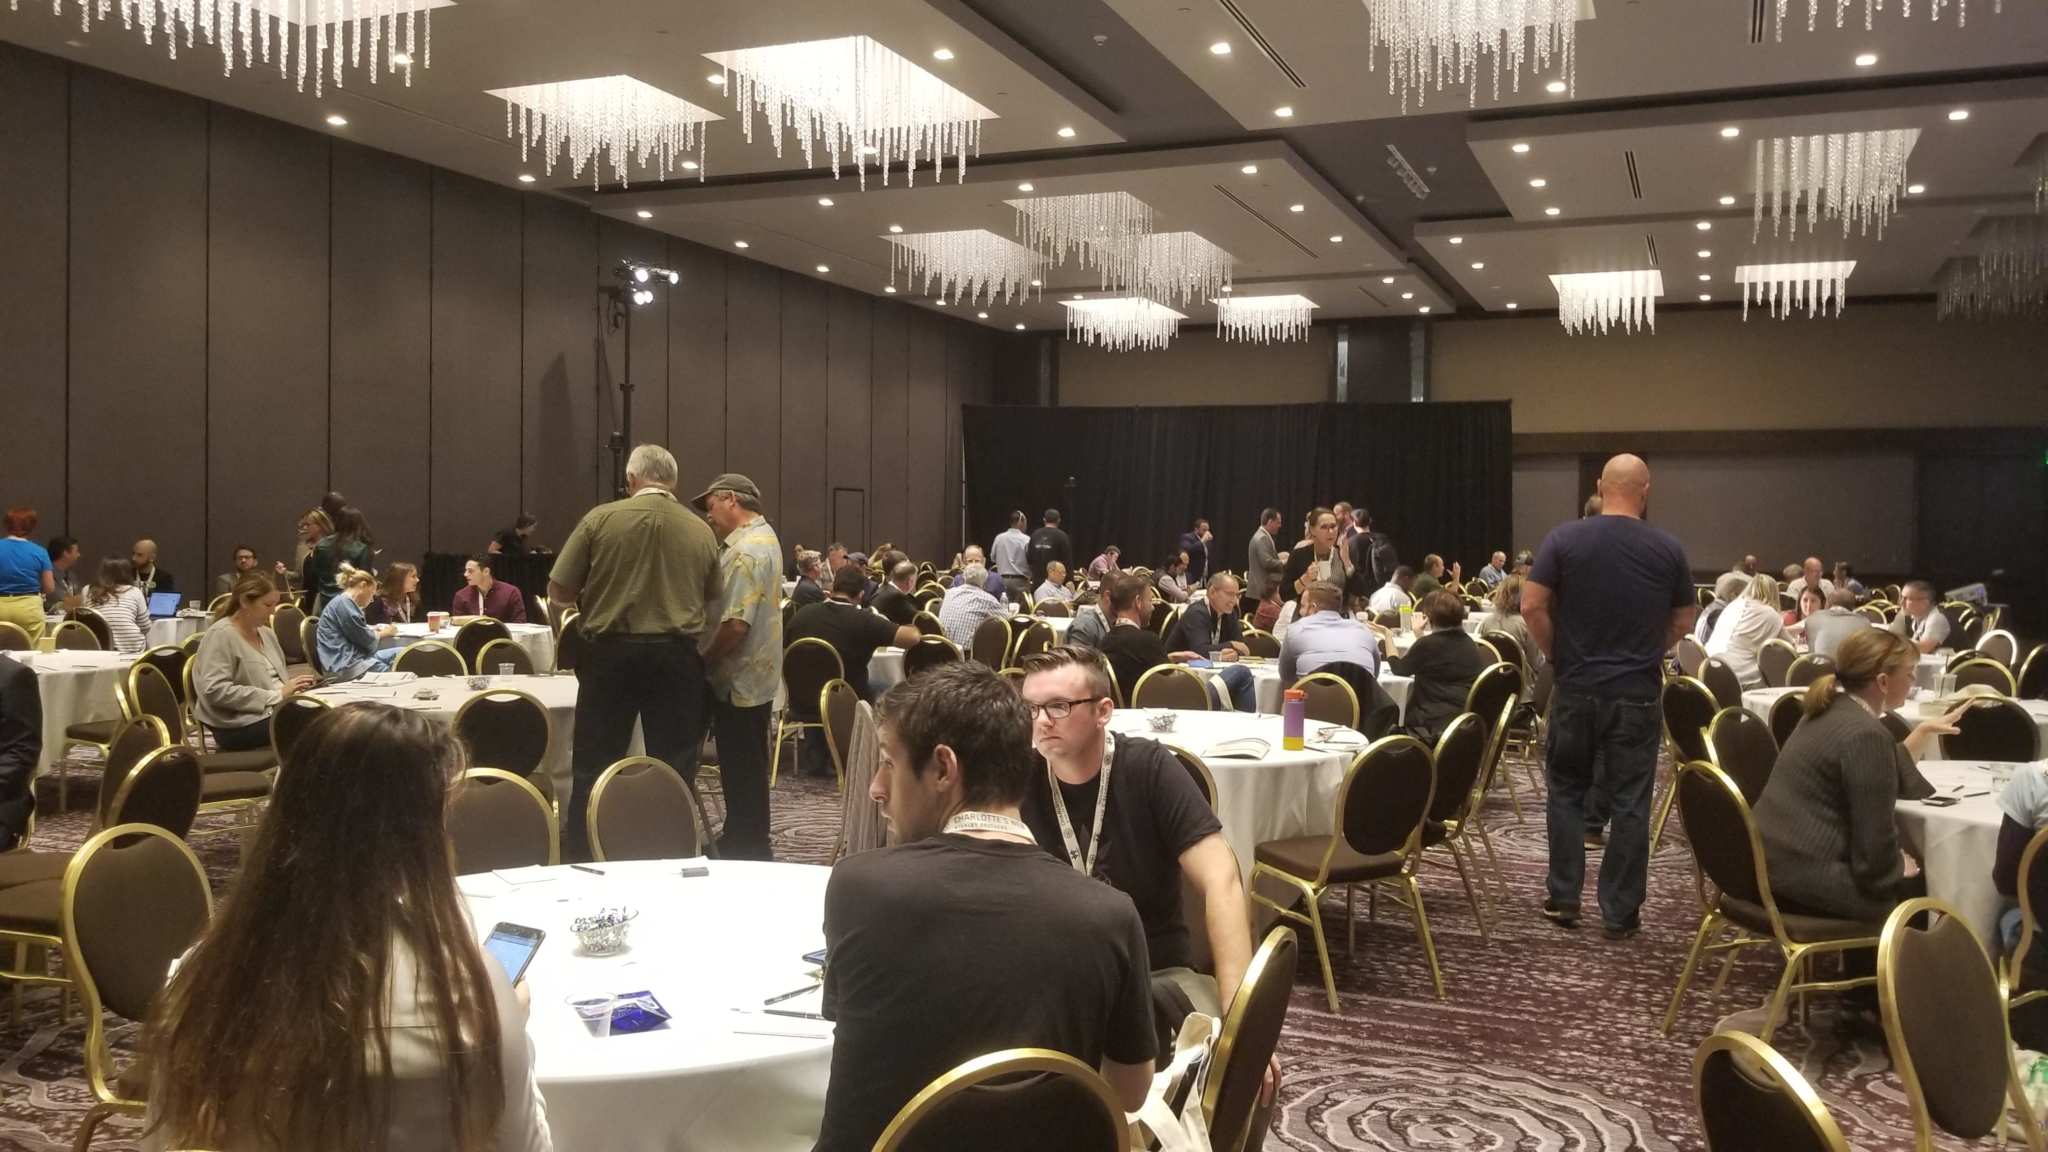 A crowd gathered in one of the ballrooms at the Hemp Industries Association Conference. Hundreds gathered at the Los Angeles Hilton for the 2018 Hemp Industries Association Conference, where they discussed the future and potential of hemp in America.